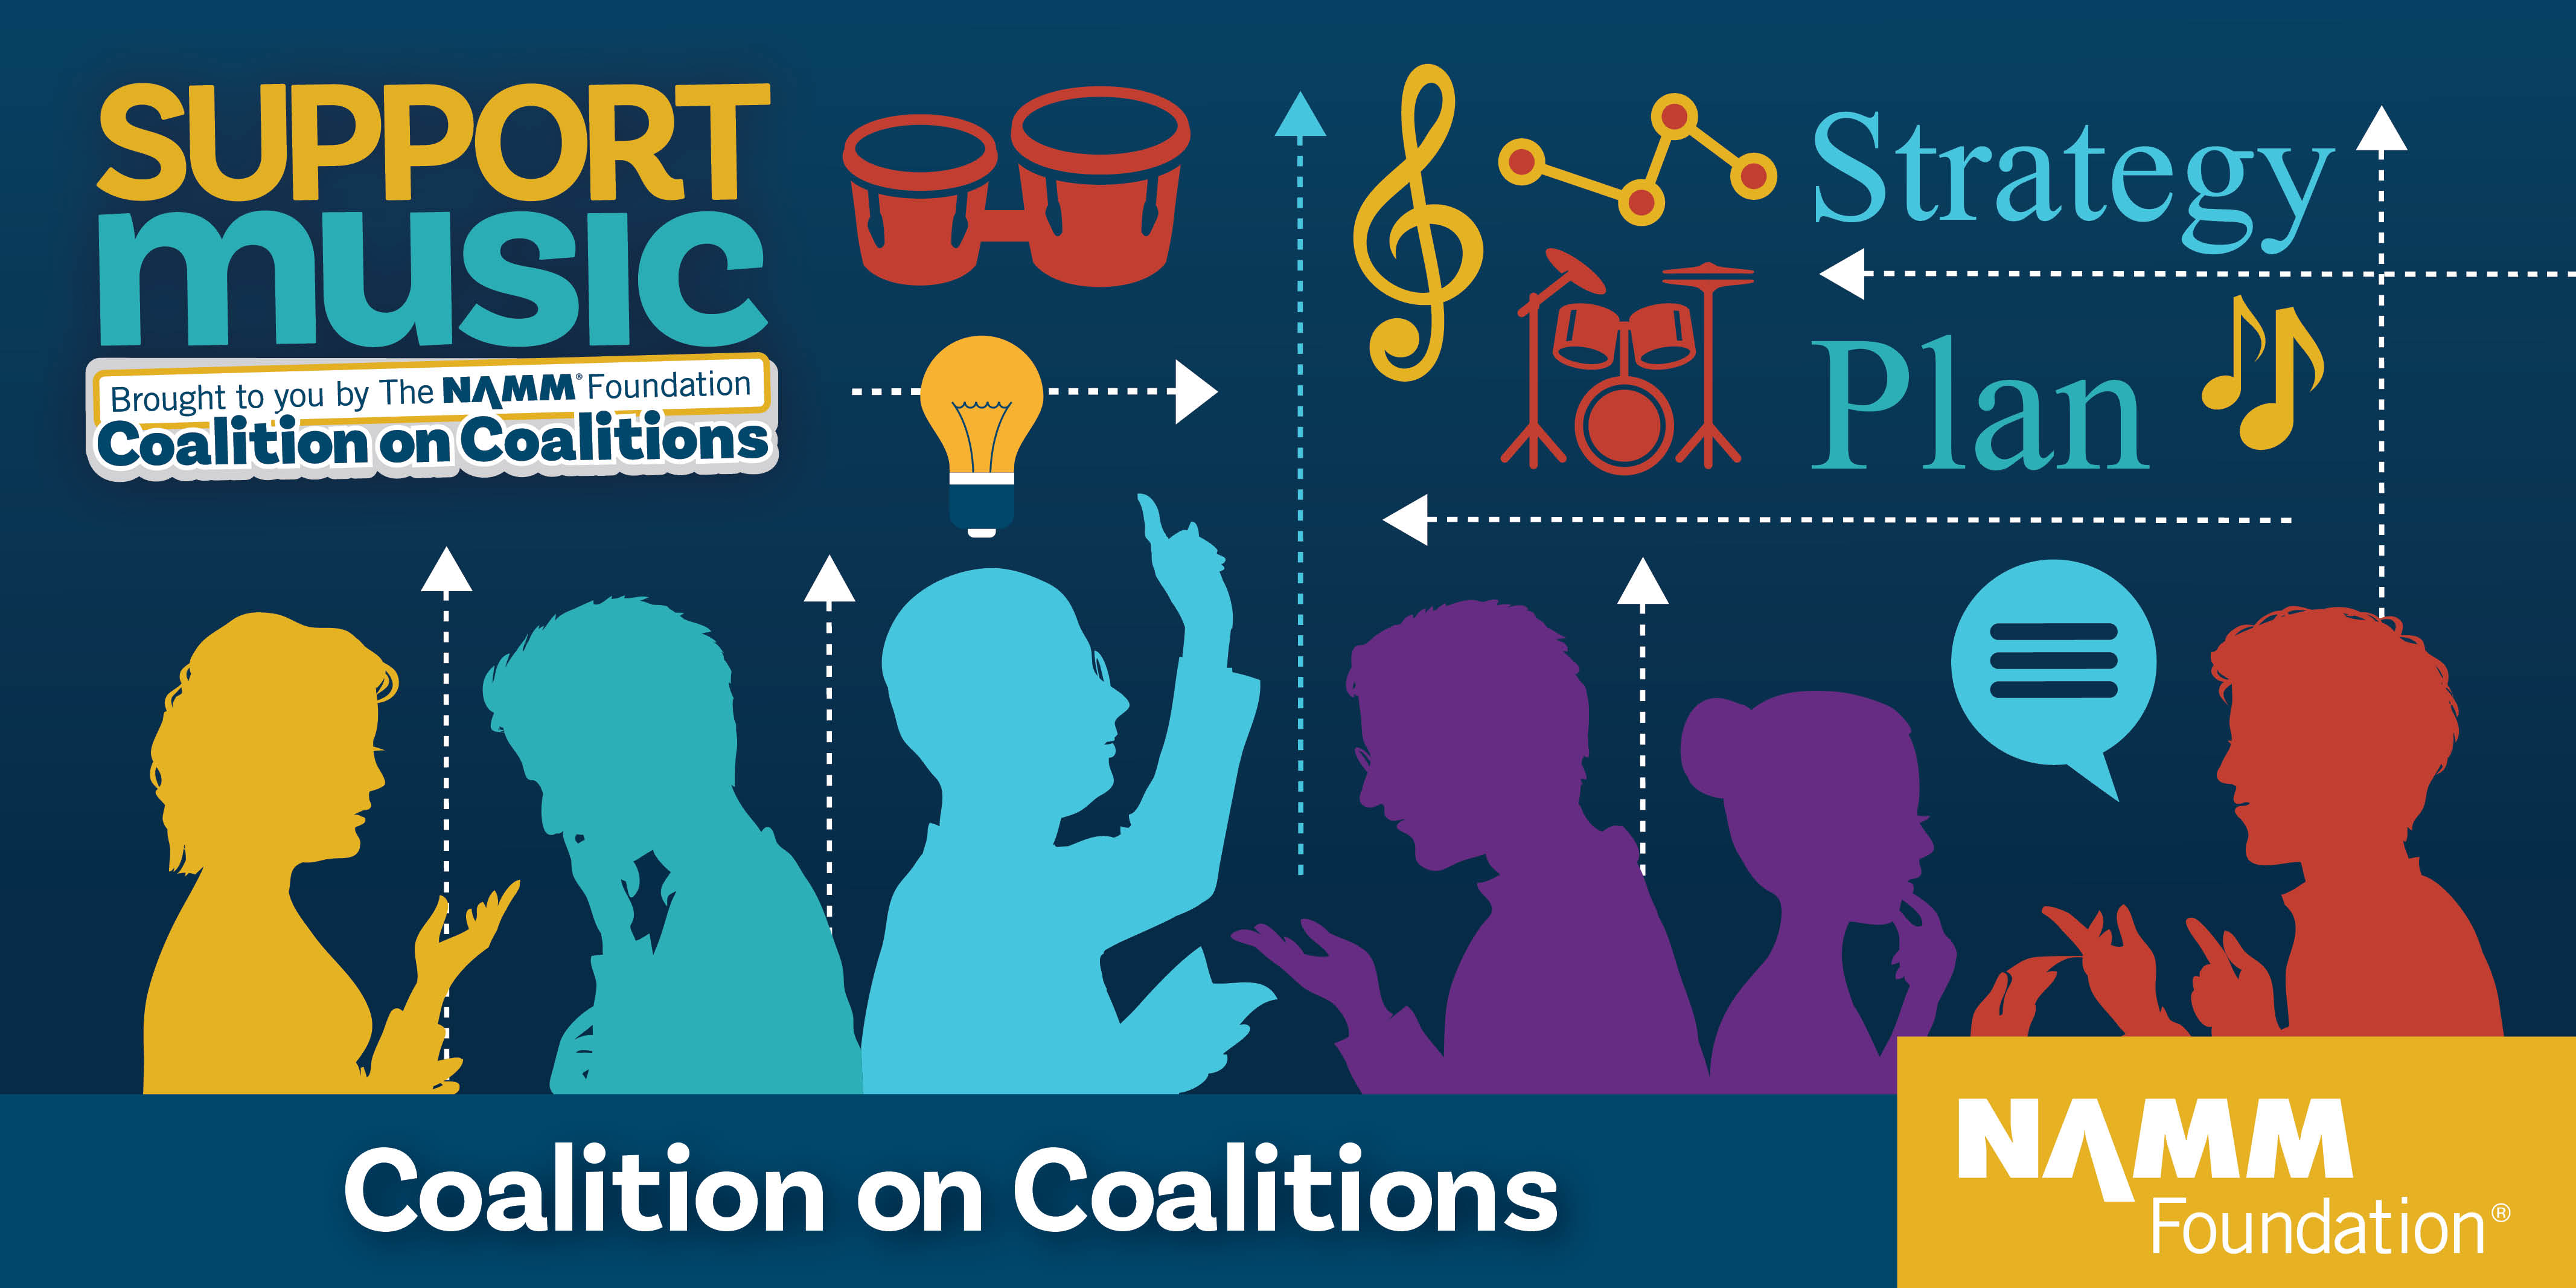 SupportMusic Coalition on Coalitions for Music Education Advocacy